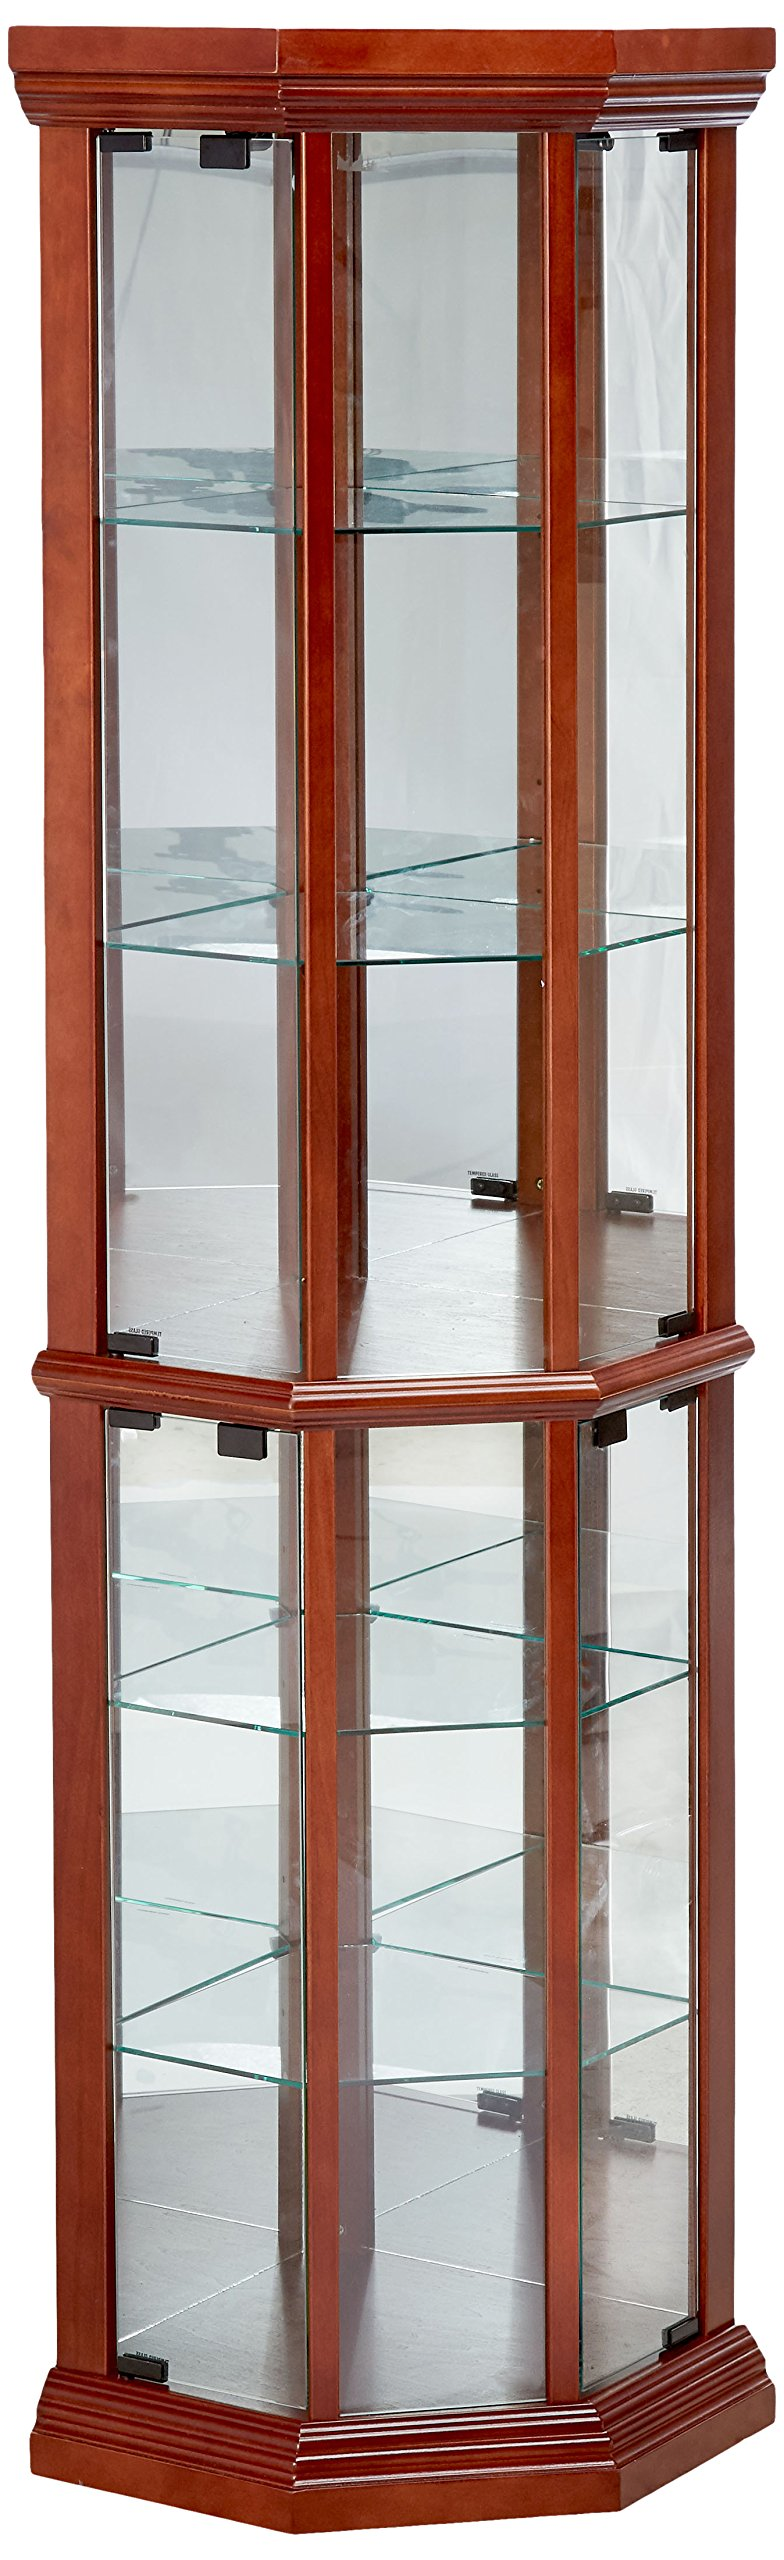 Glass Corner Curio Cabinet with 6-Shelf Medium Brown by Coaster Home Furnishings